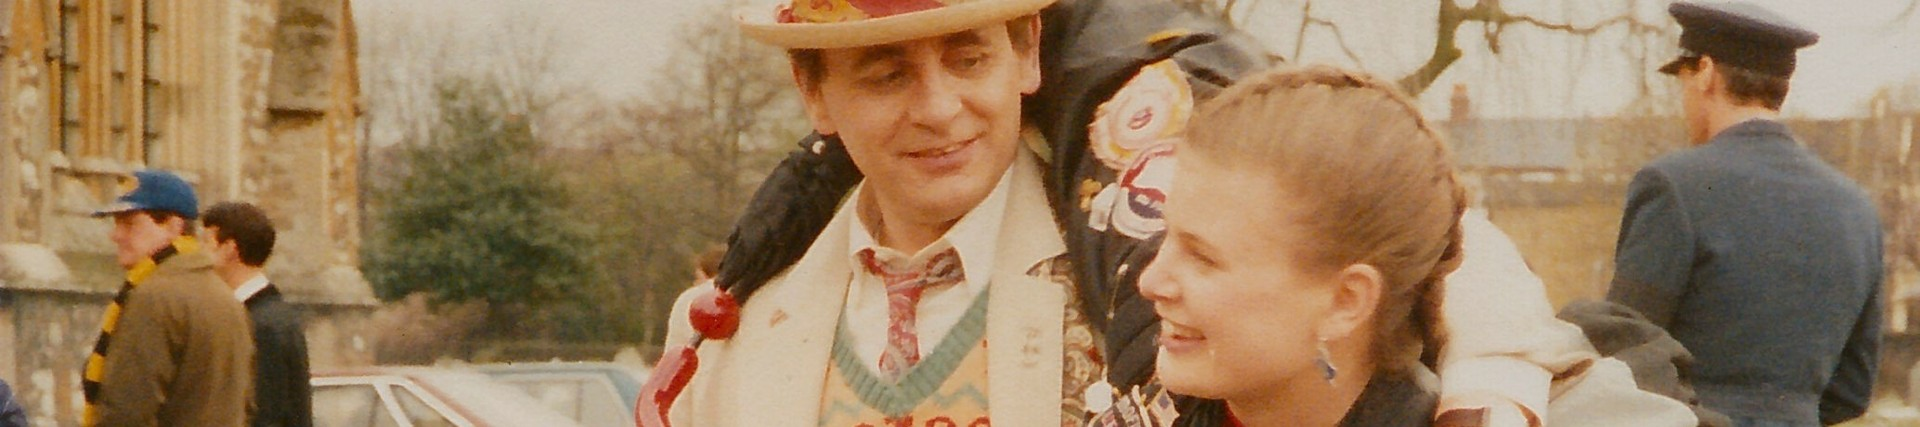 Image of Sylvester McCoy and Sophie Aldred on location for Remembrance of the Daleks